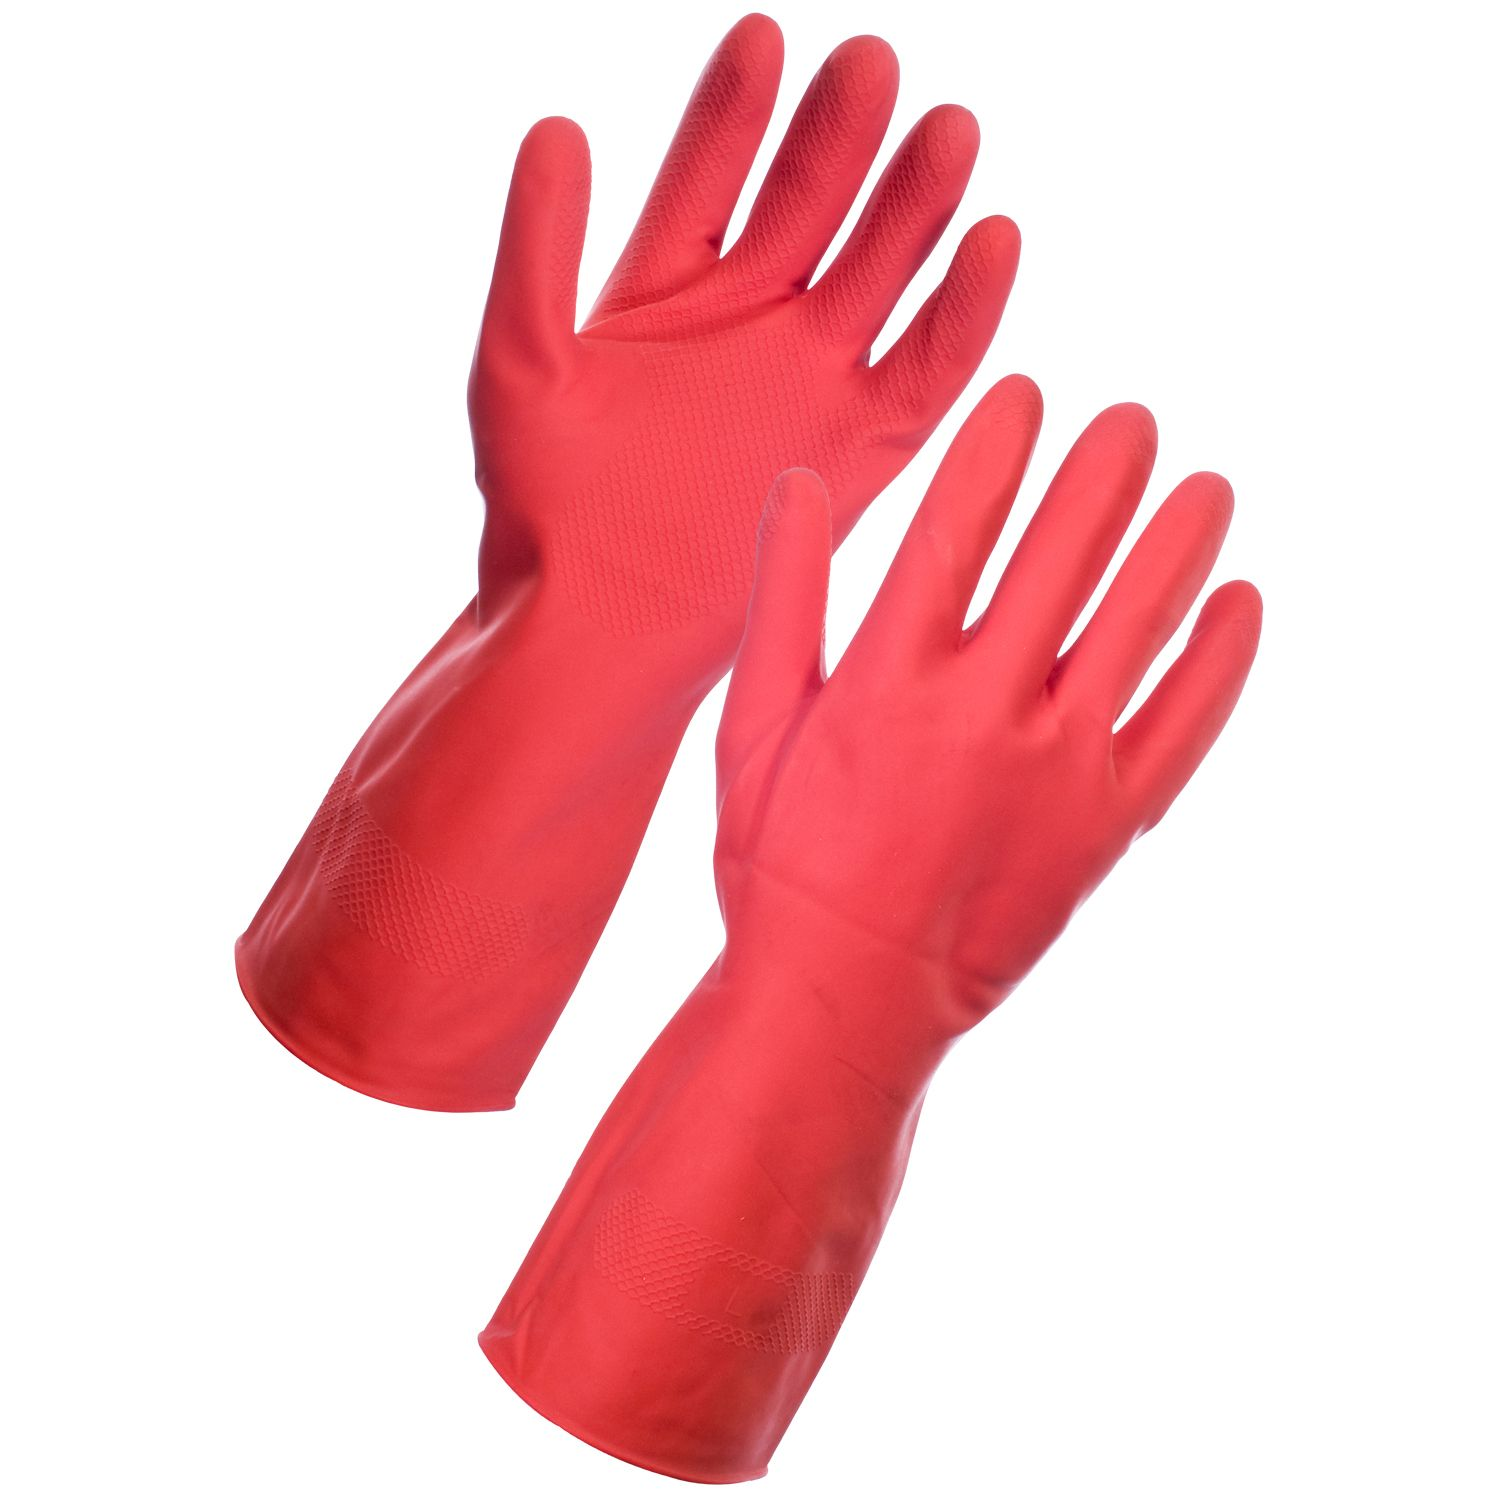 Sti Household Rubber Latex Marigold Red Gloves